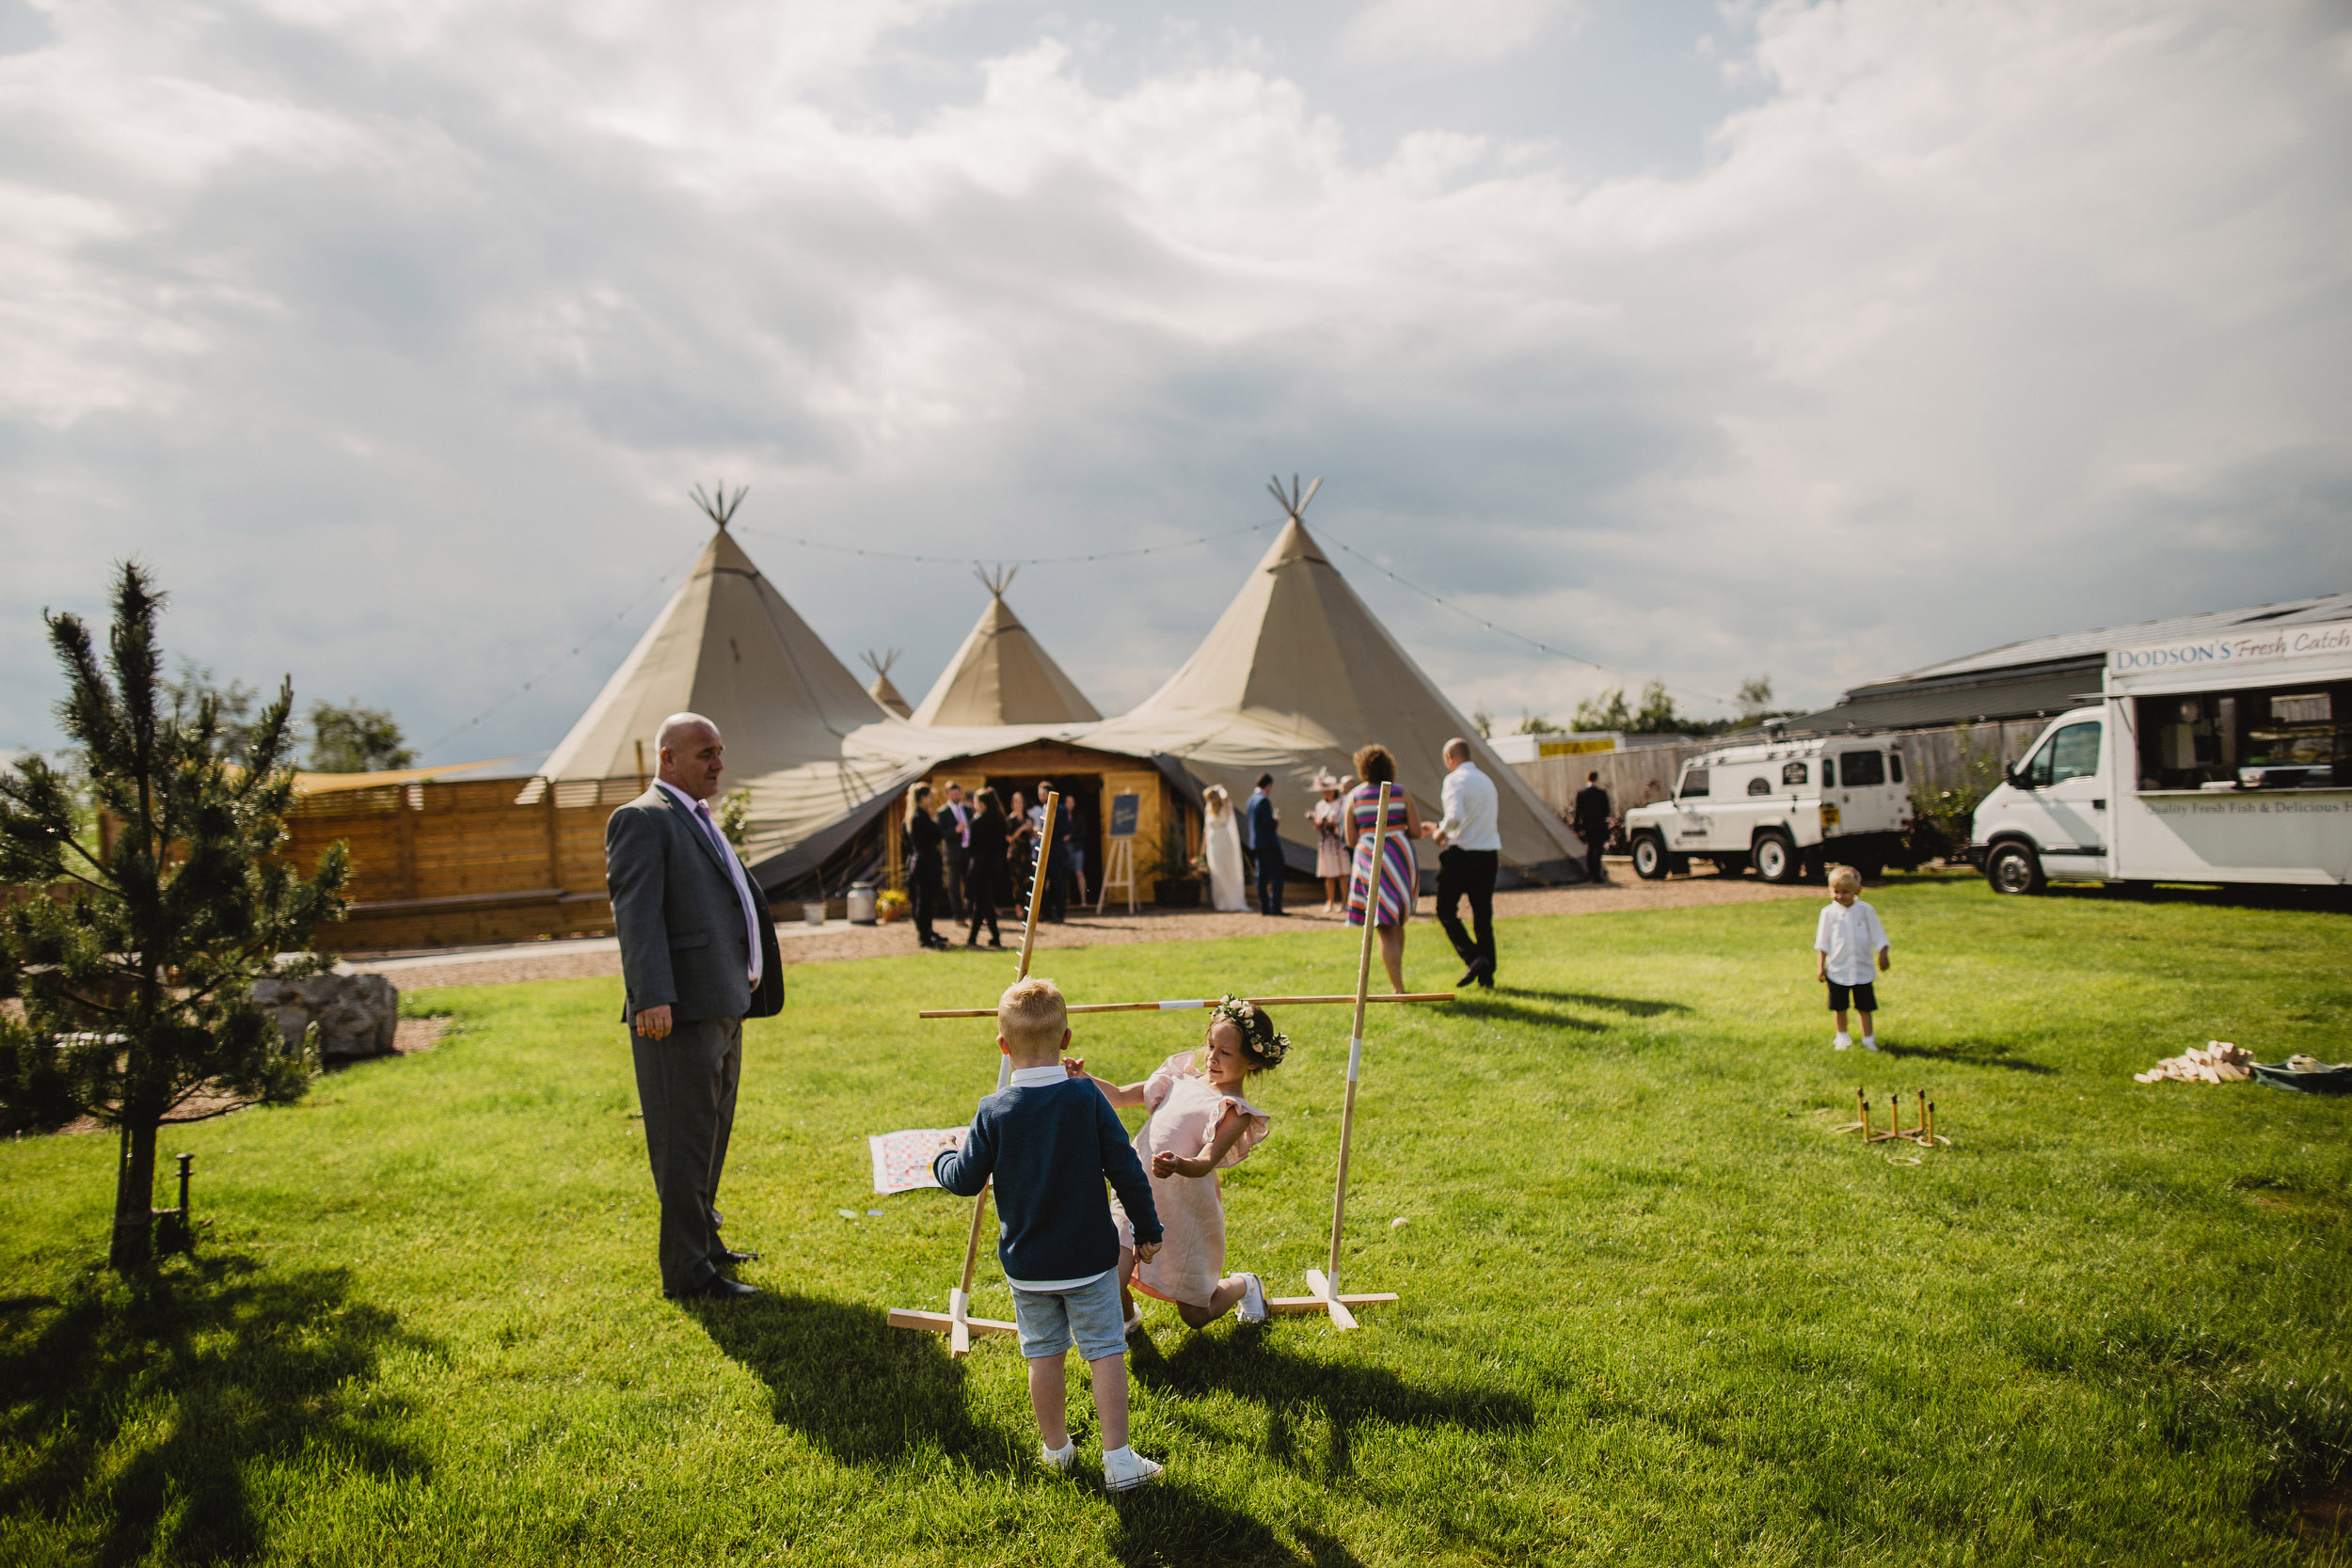 Gemma-Bohemian-Outdoor-Tipi-Wedding-Laid-Back-Relaxed-Family-Wedding-Kate-Beaumont-Astilbe-by-S6-Photography-Sheffield-31.jpg